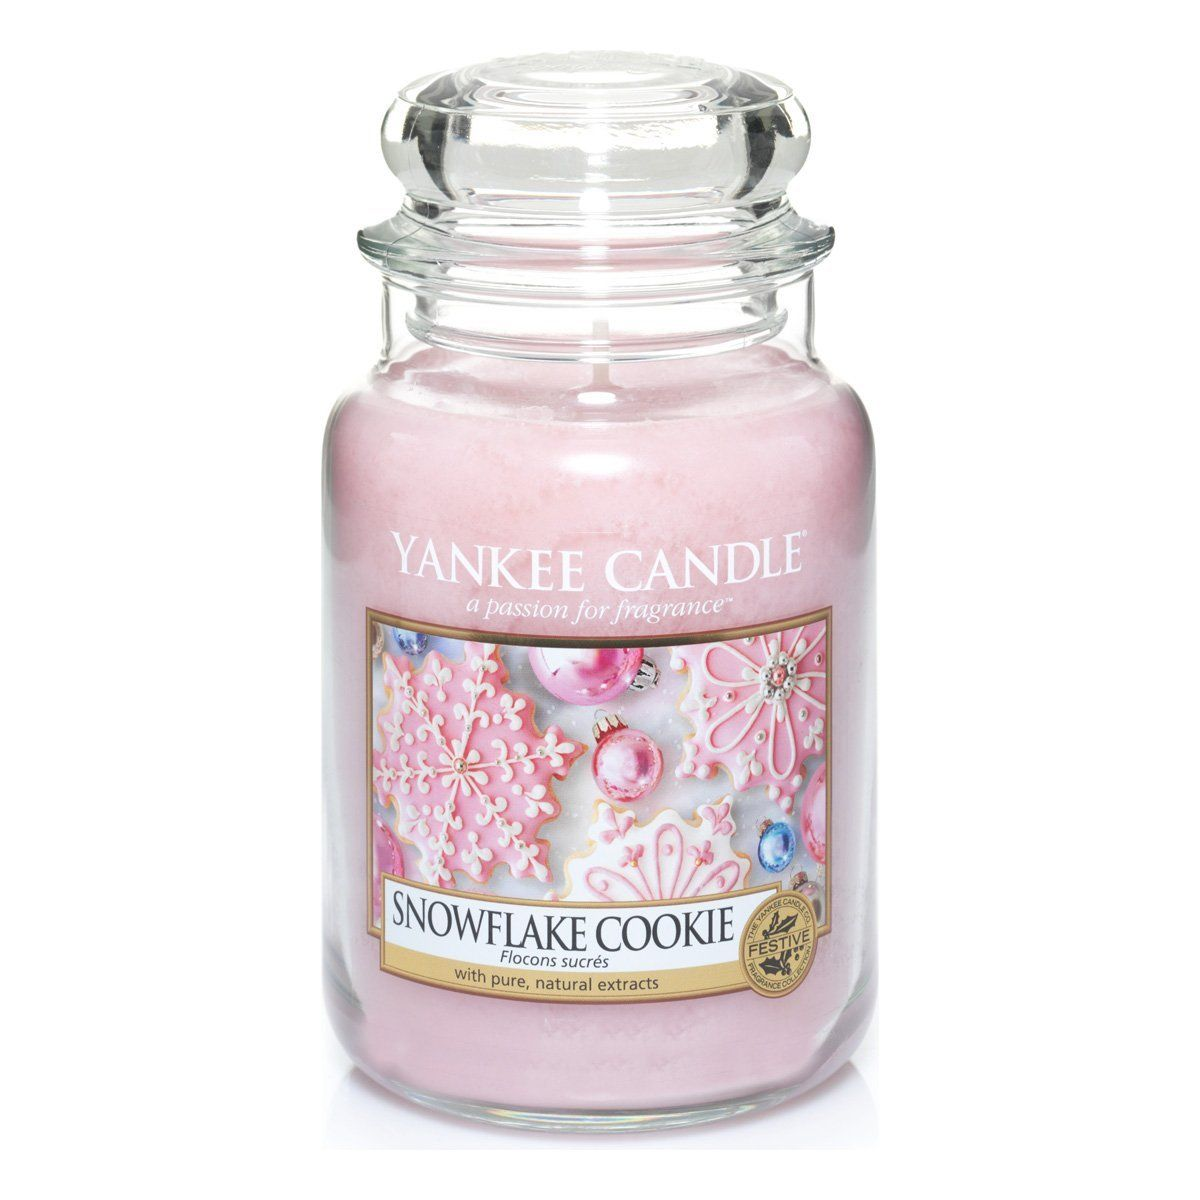 Yankee candle large jar candle snowflake cookie amazon